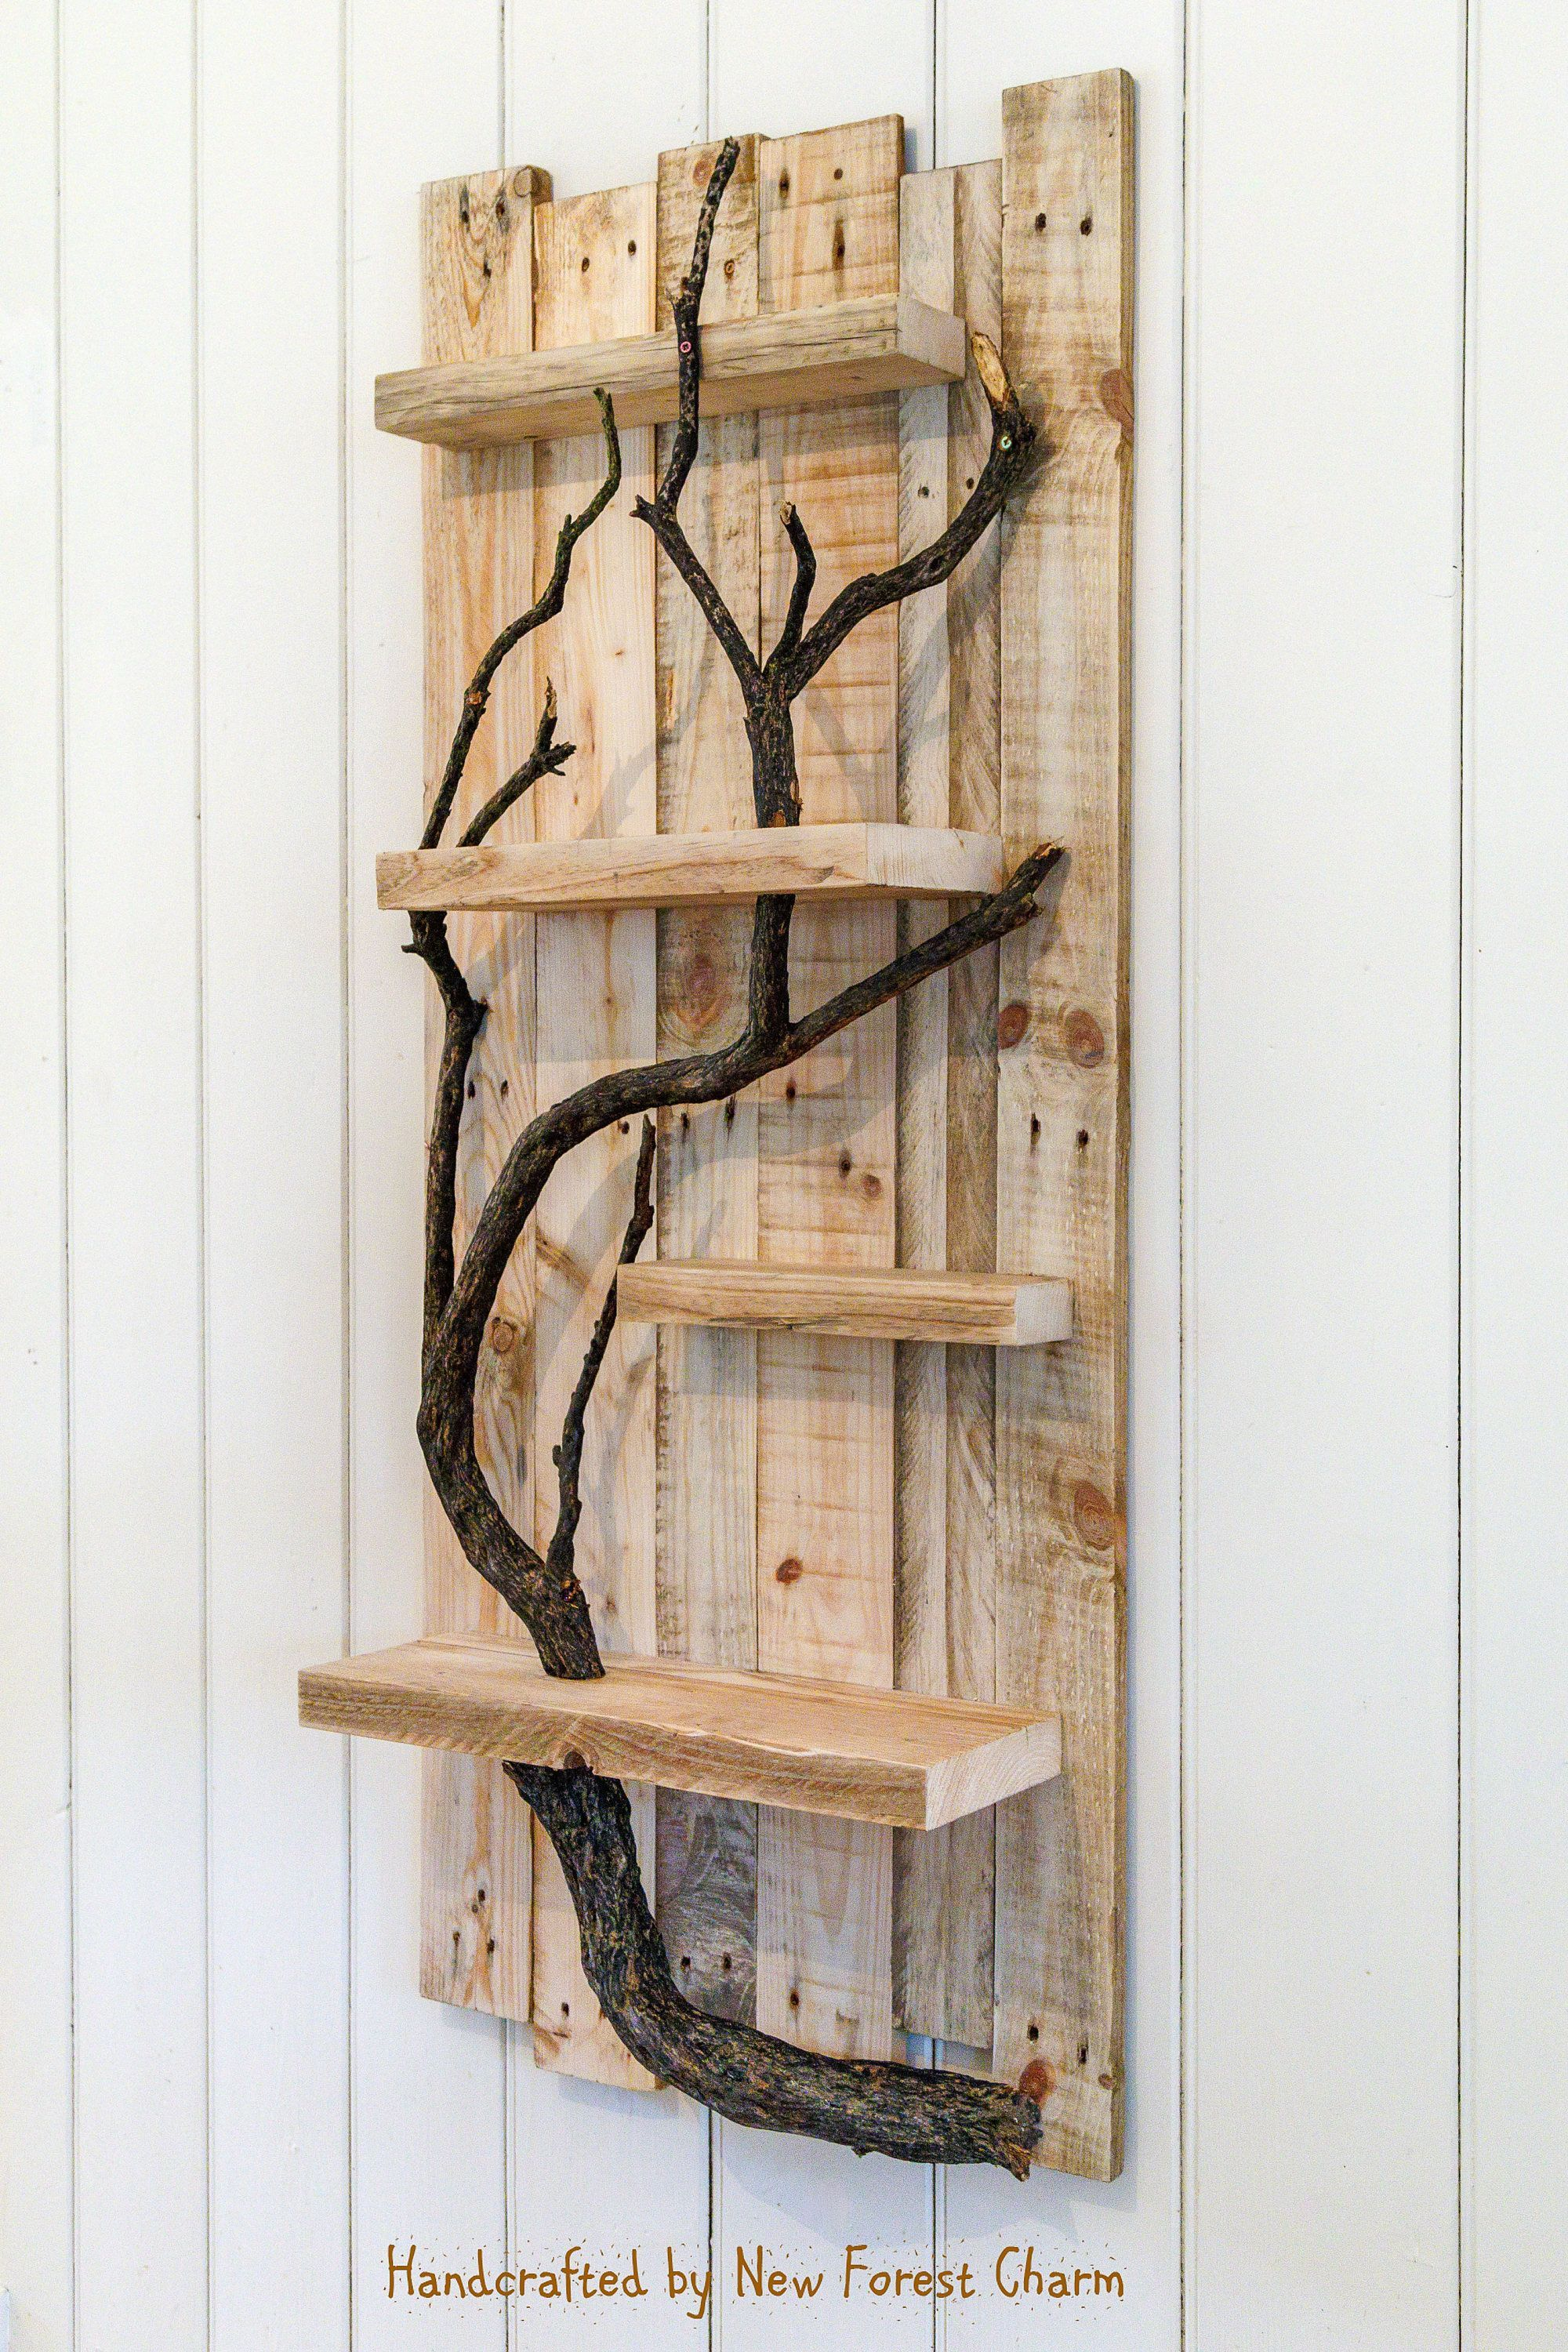 Rustic Home Decor Wall Art Reclaimed Pallet Shelves Wooden Home Decor 4 Shelf Tree Branch By Newforestcharm Home Decor Wall Art Wood Home Decor Diy Wall Decor